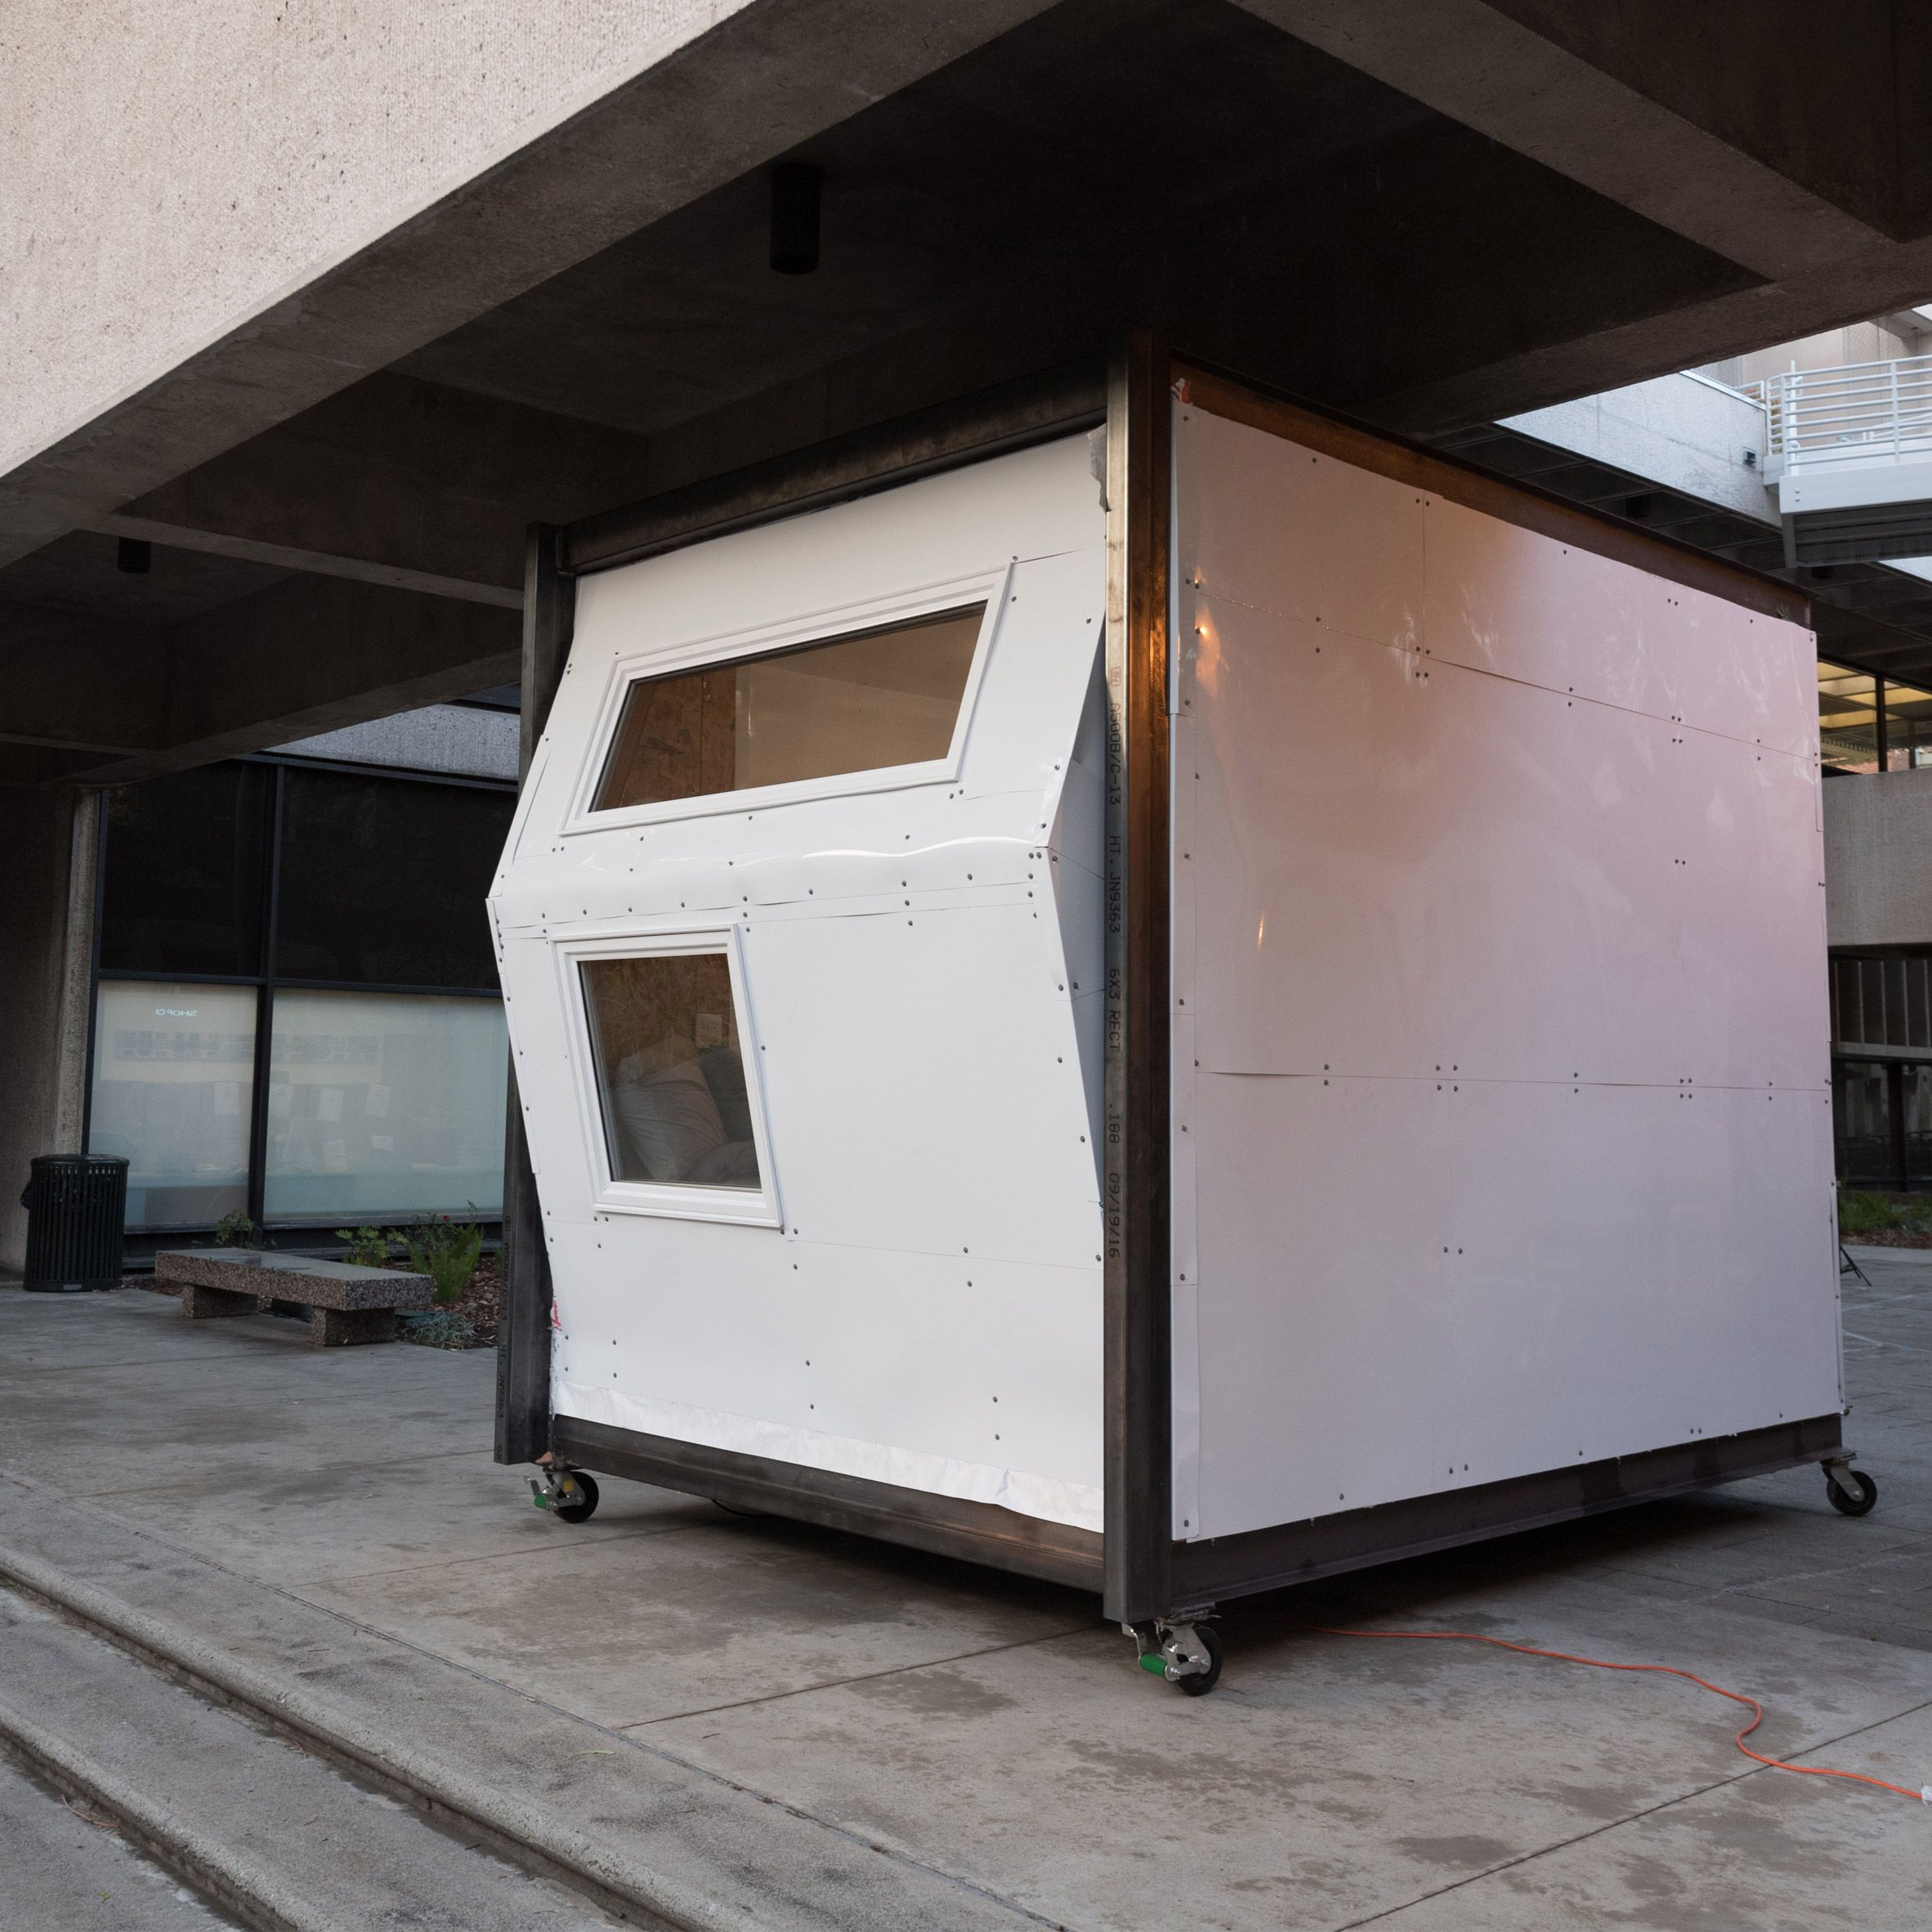 Pin By Brittany Sharpley On Urban Design Homeless Housing California Architecture Tiny House Design